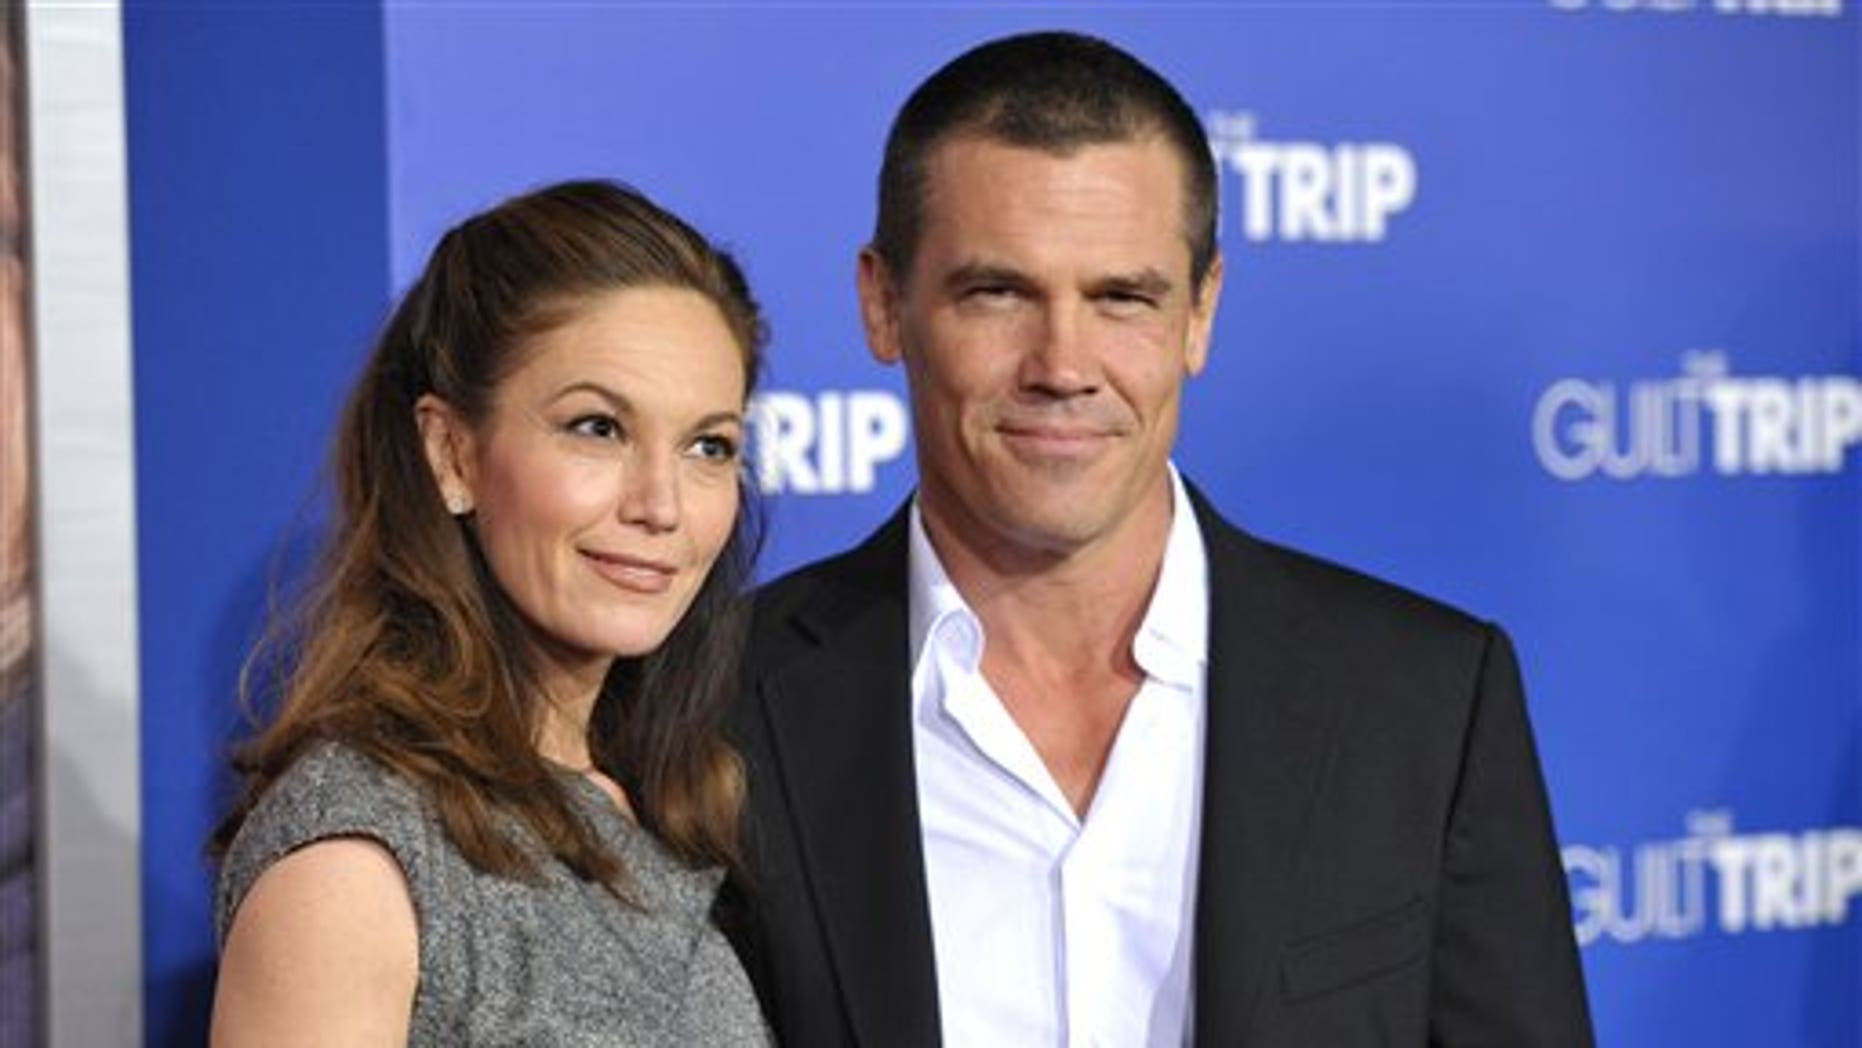 """This Dec. 11, 2012 file photo shows actors Diane Lane, left, and Josh Brolin at the LA premiere of """"The Guilt Trip"""" in Los Angeles."""